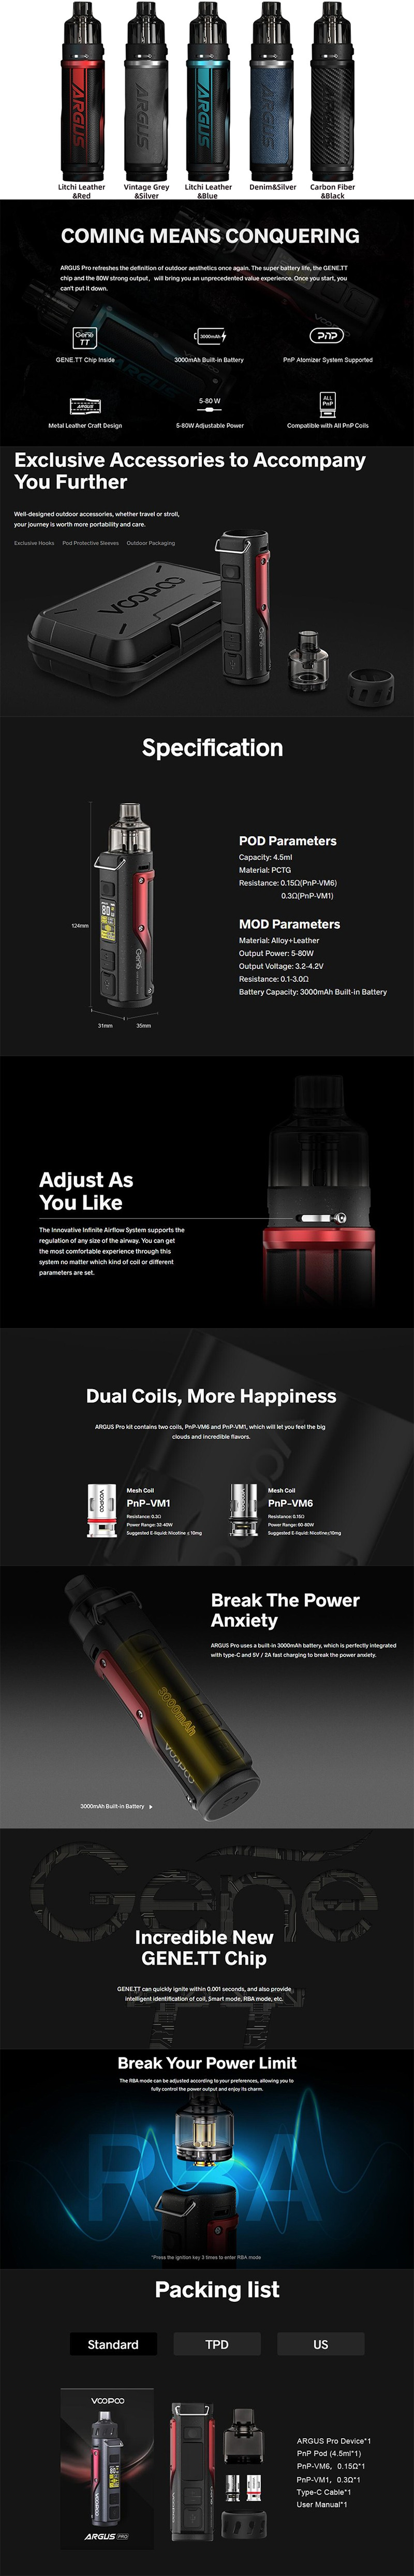 Authentic VOOPOO Argus Pro Pod System